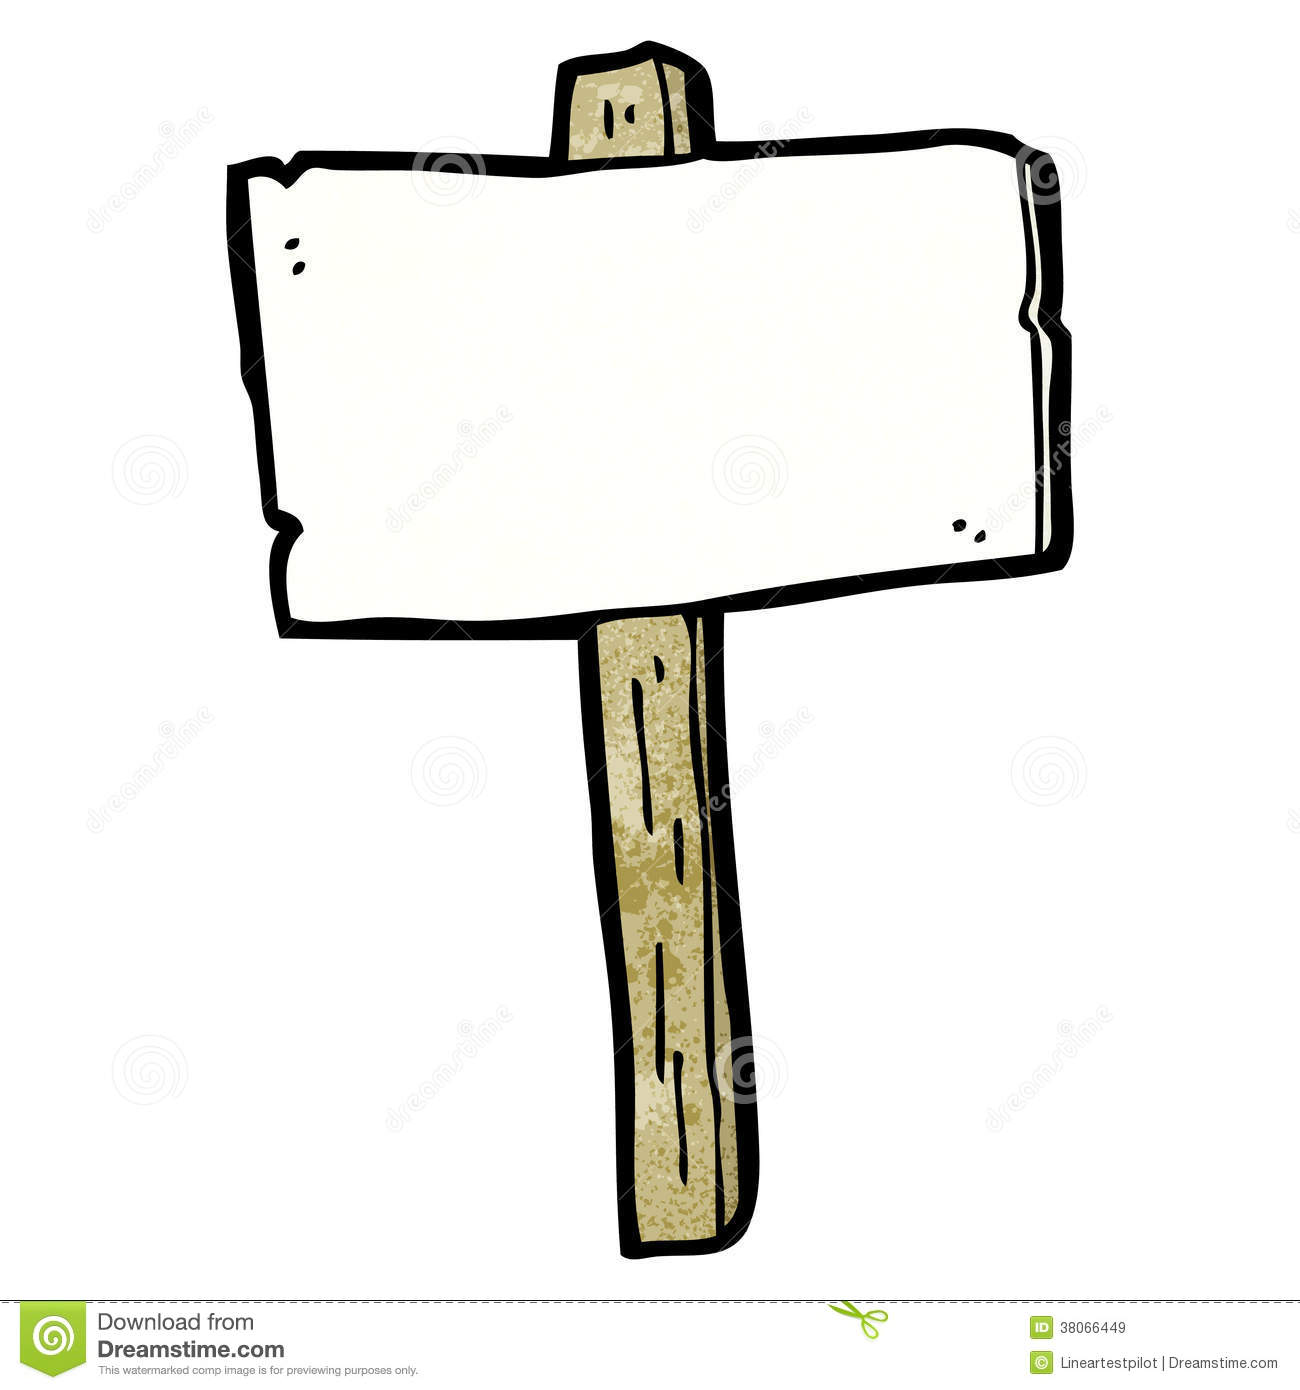 Blank Signpost Cartoon Royalty Free Stock Images - Image: 38066449